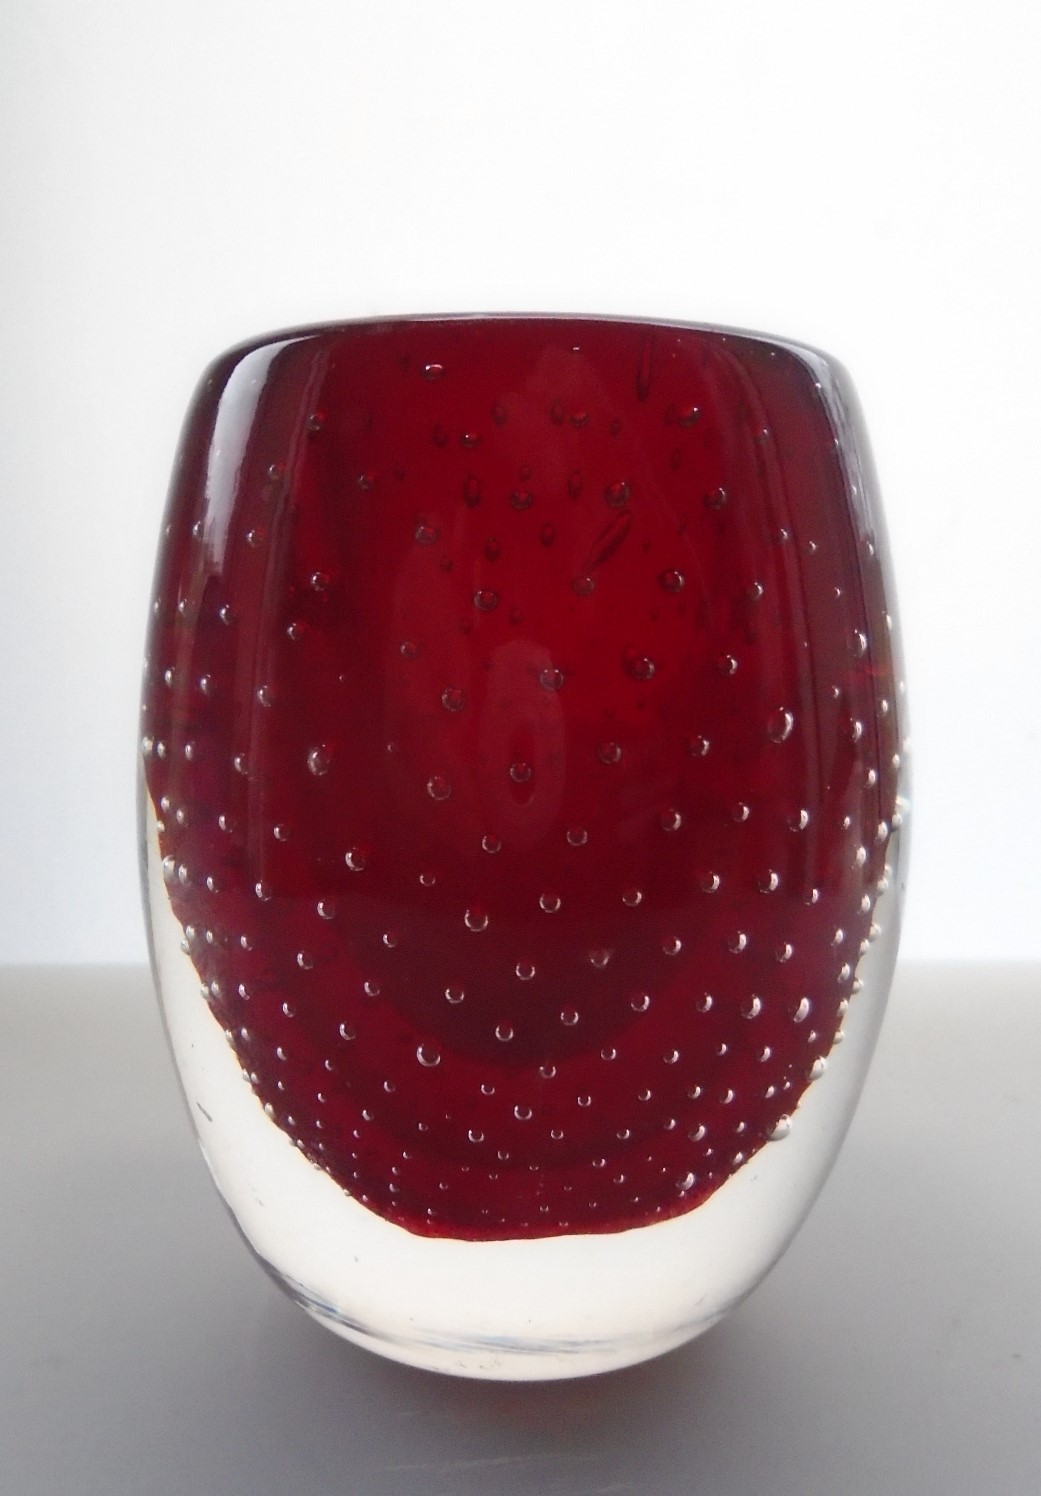 Charming 60s vintage Geoffrey Baxter WHITEFRIARS Controlled Bubble Vase in Ruby pattern No. 9506.